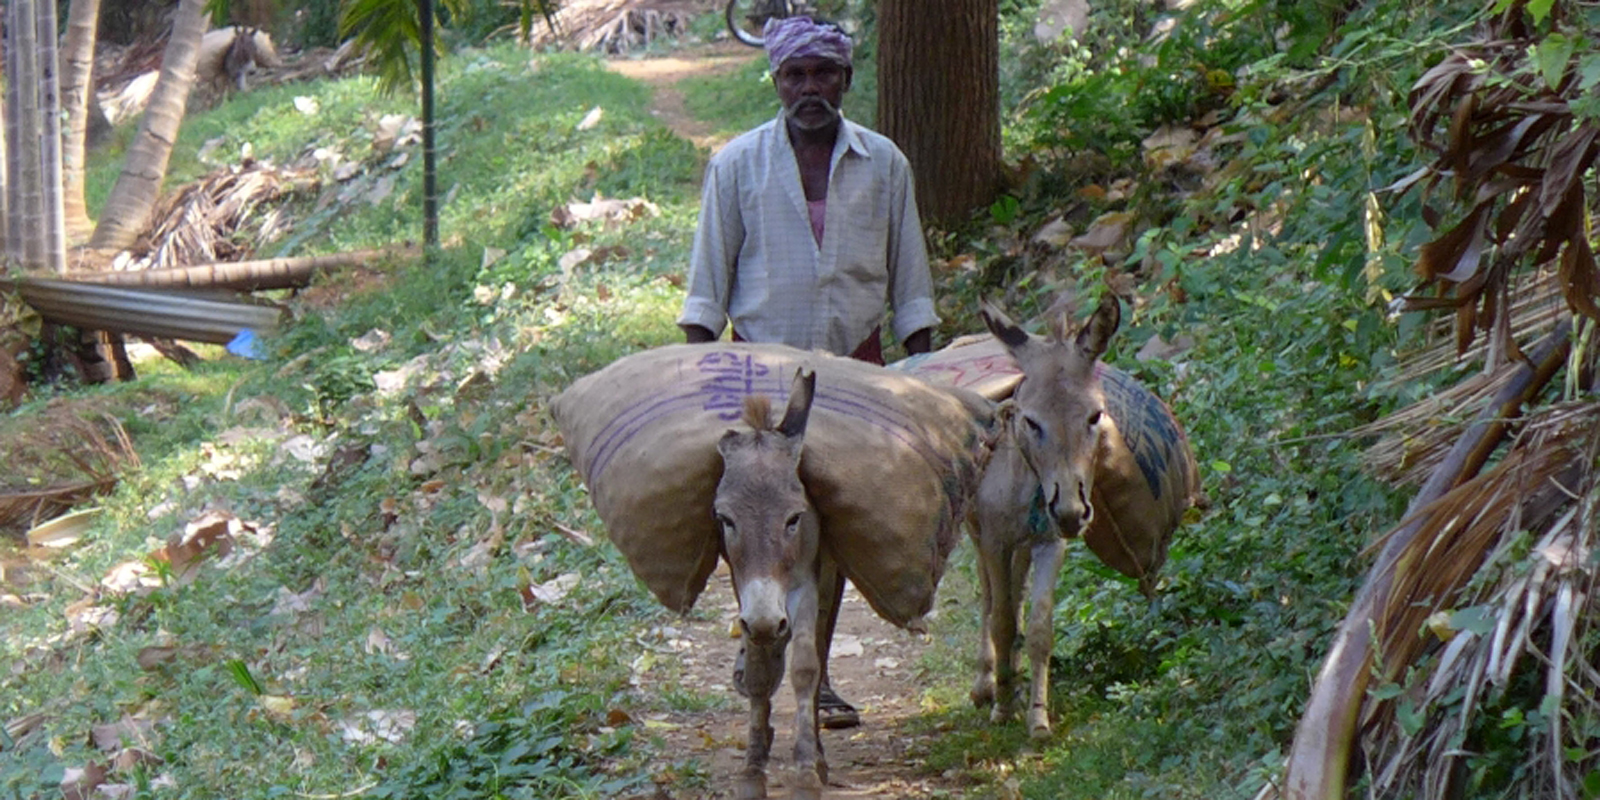 Working donkeys carrying burdens in South India